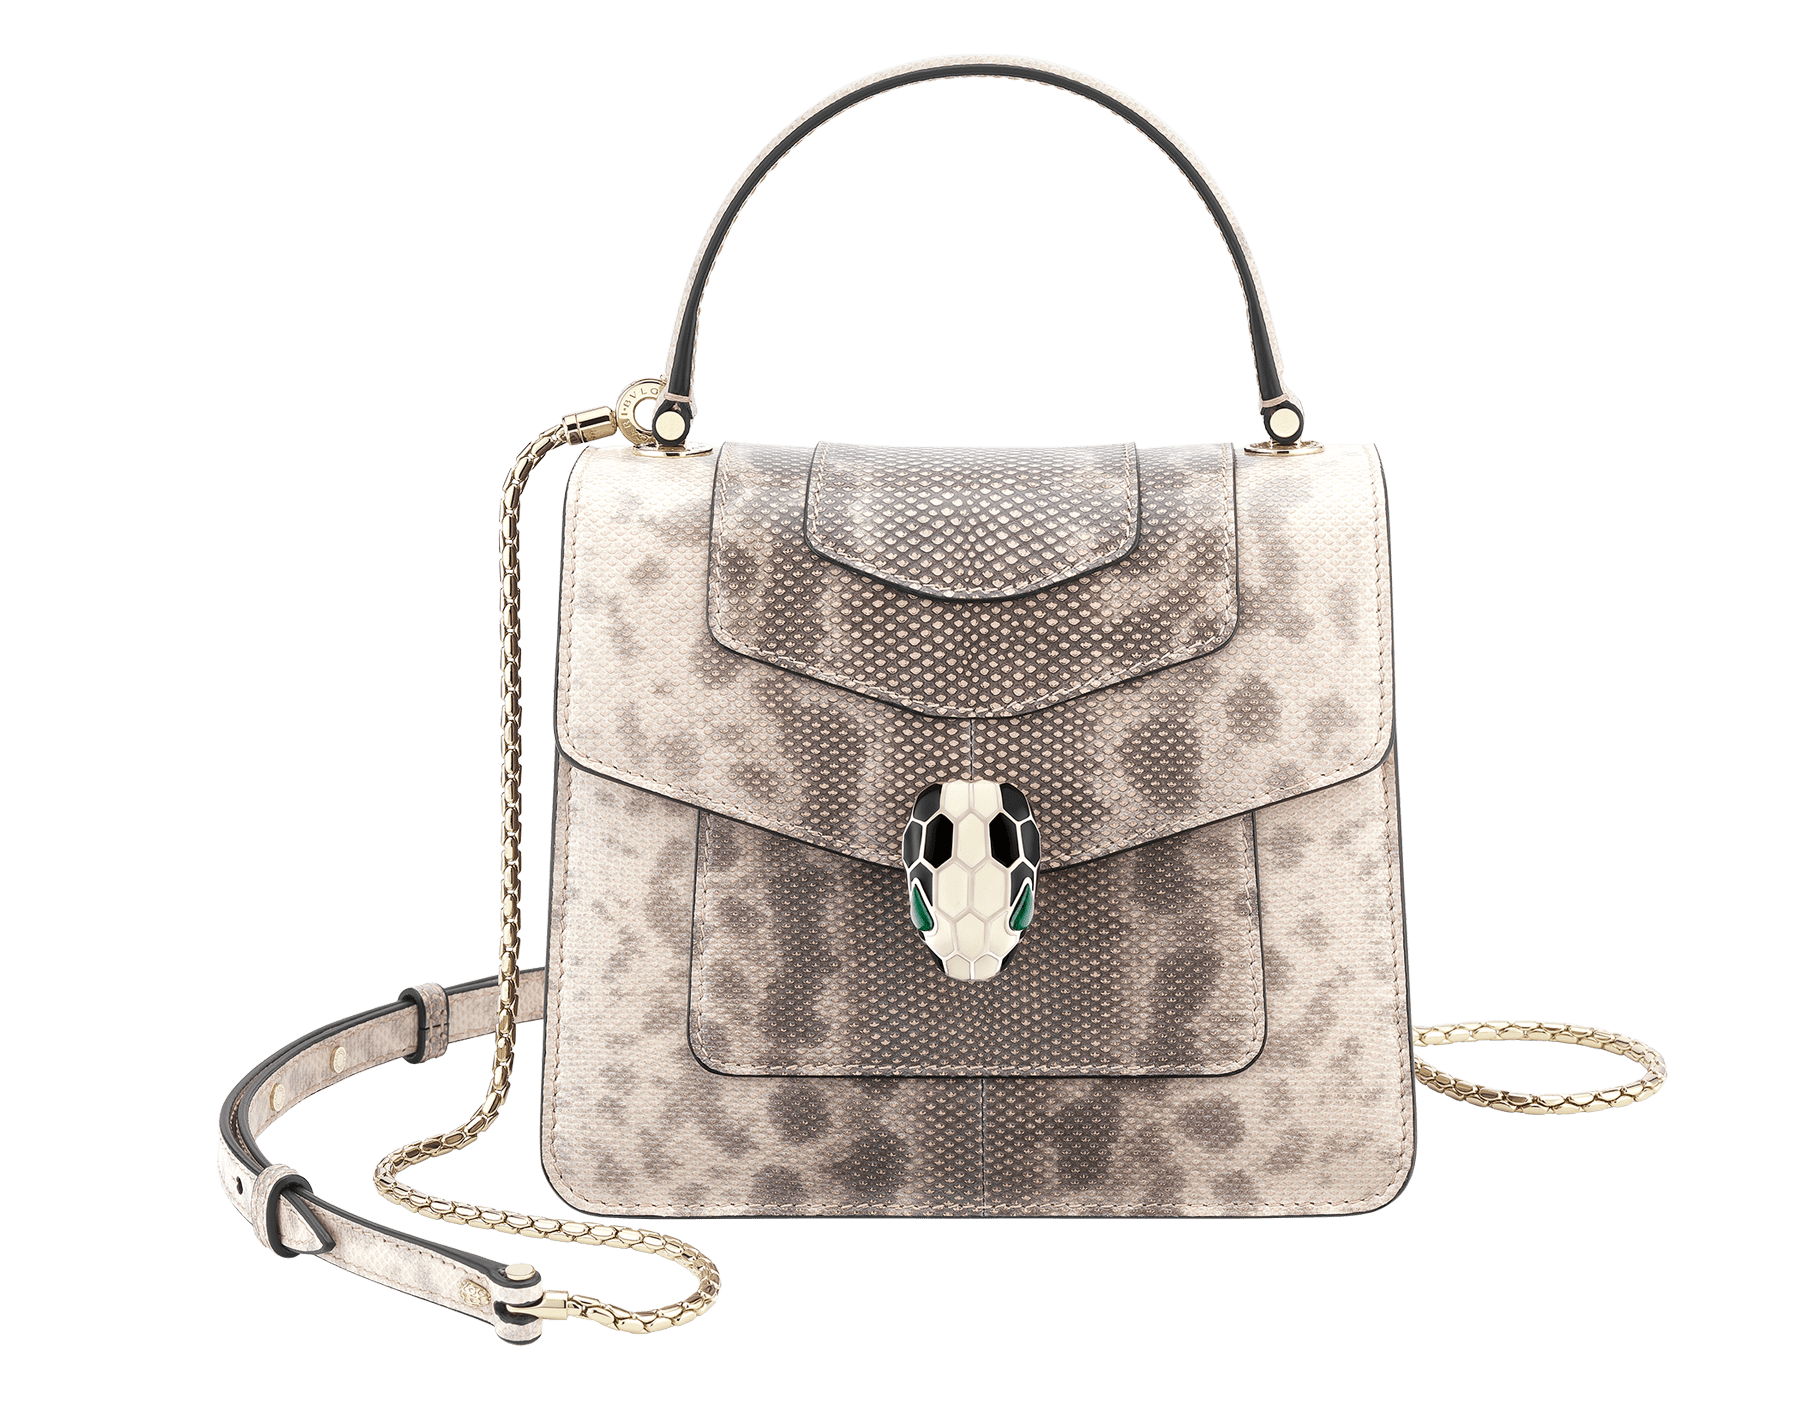 Serpenti Forever crossbody bag in milky opal shiny karung skin. Snakehead closure in light gold plated brass decorated with black and white enamel, and green malachite eyes. 287914 image 1